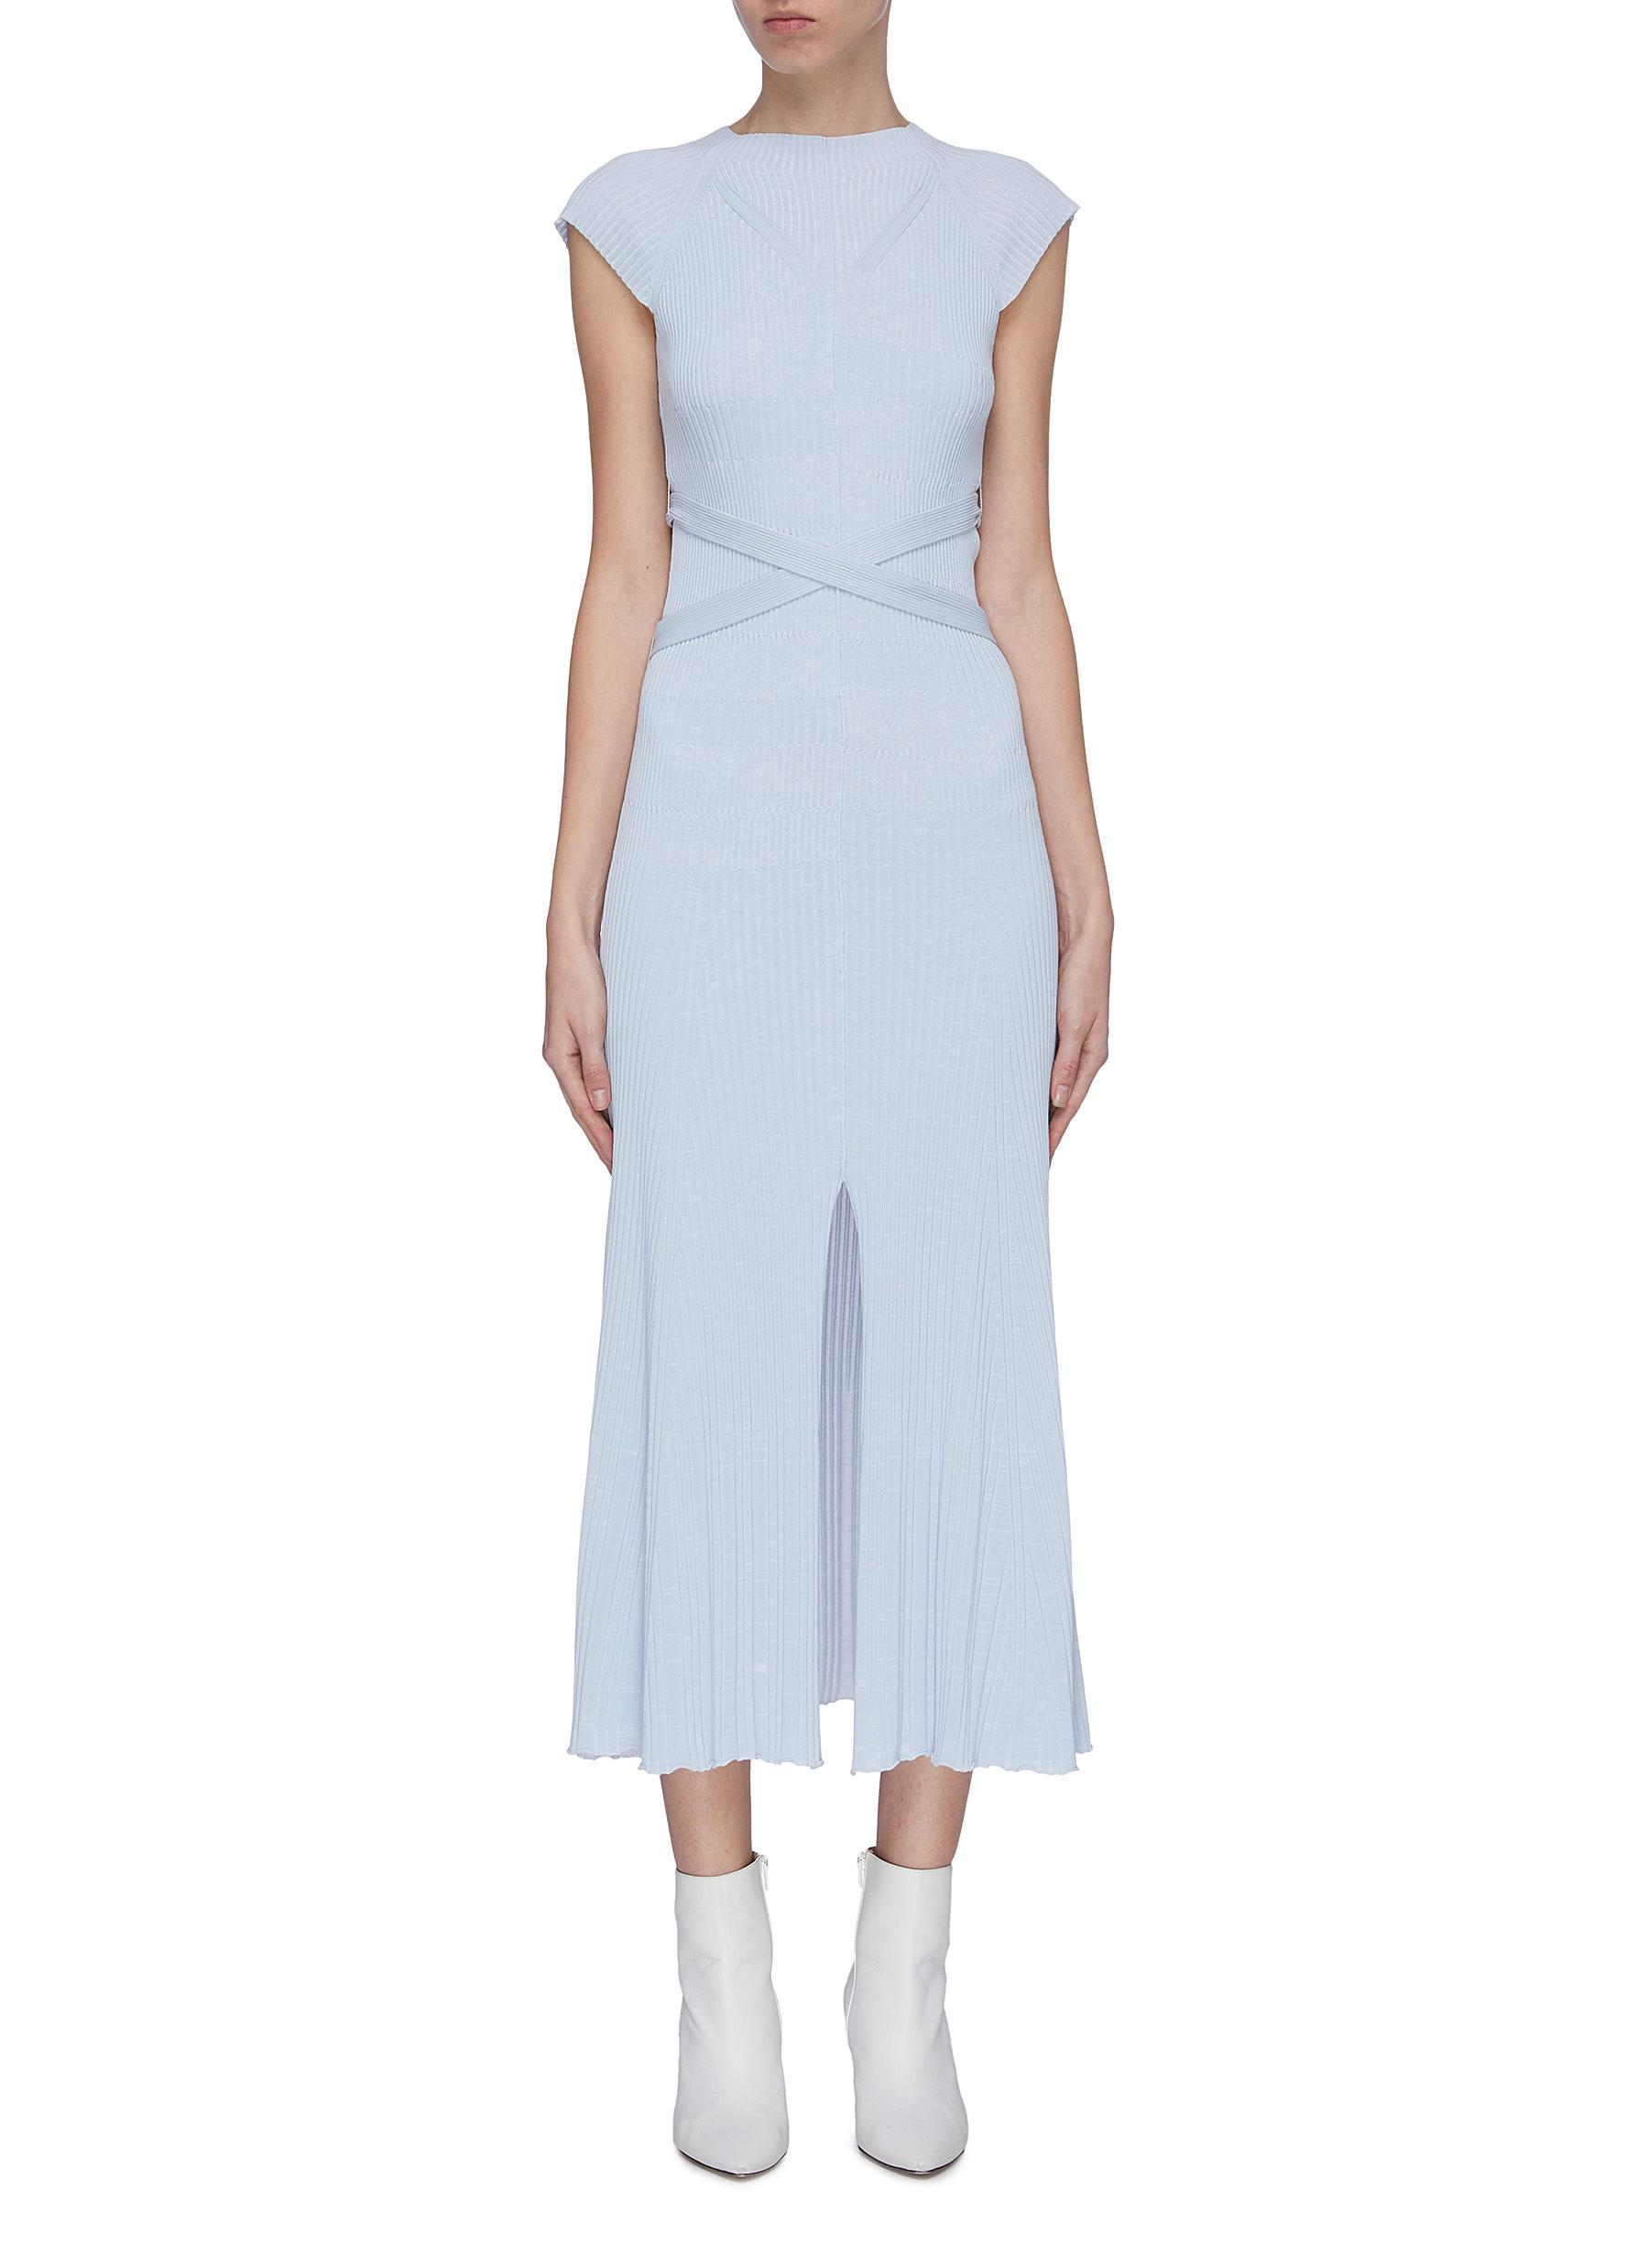 shop Mrz 'Abito Craterino Smanicato' belted rib knit dress online